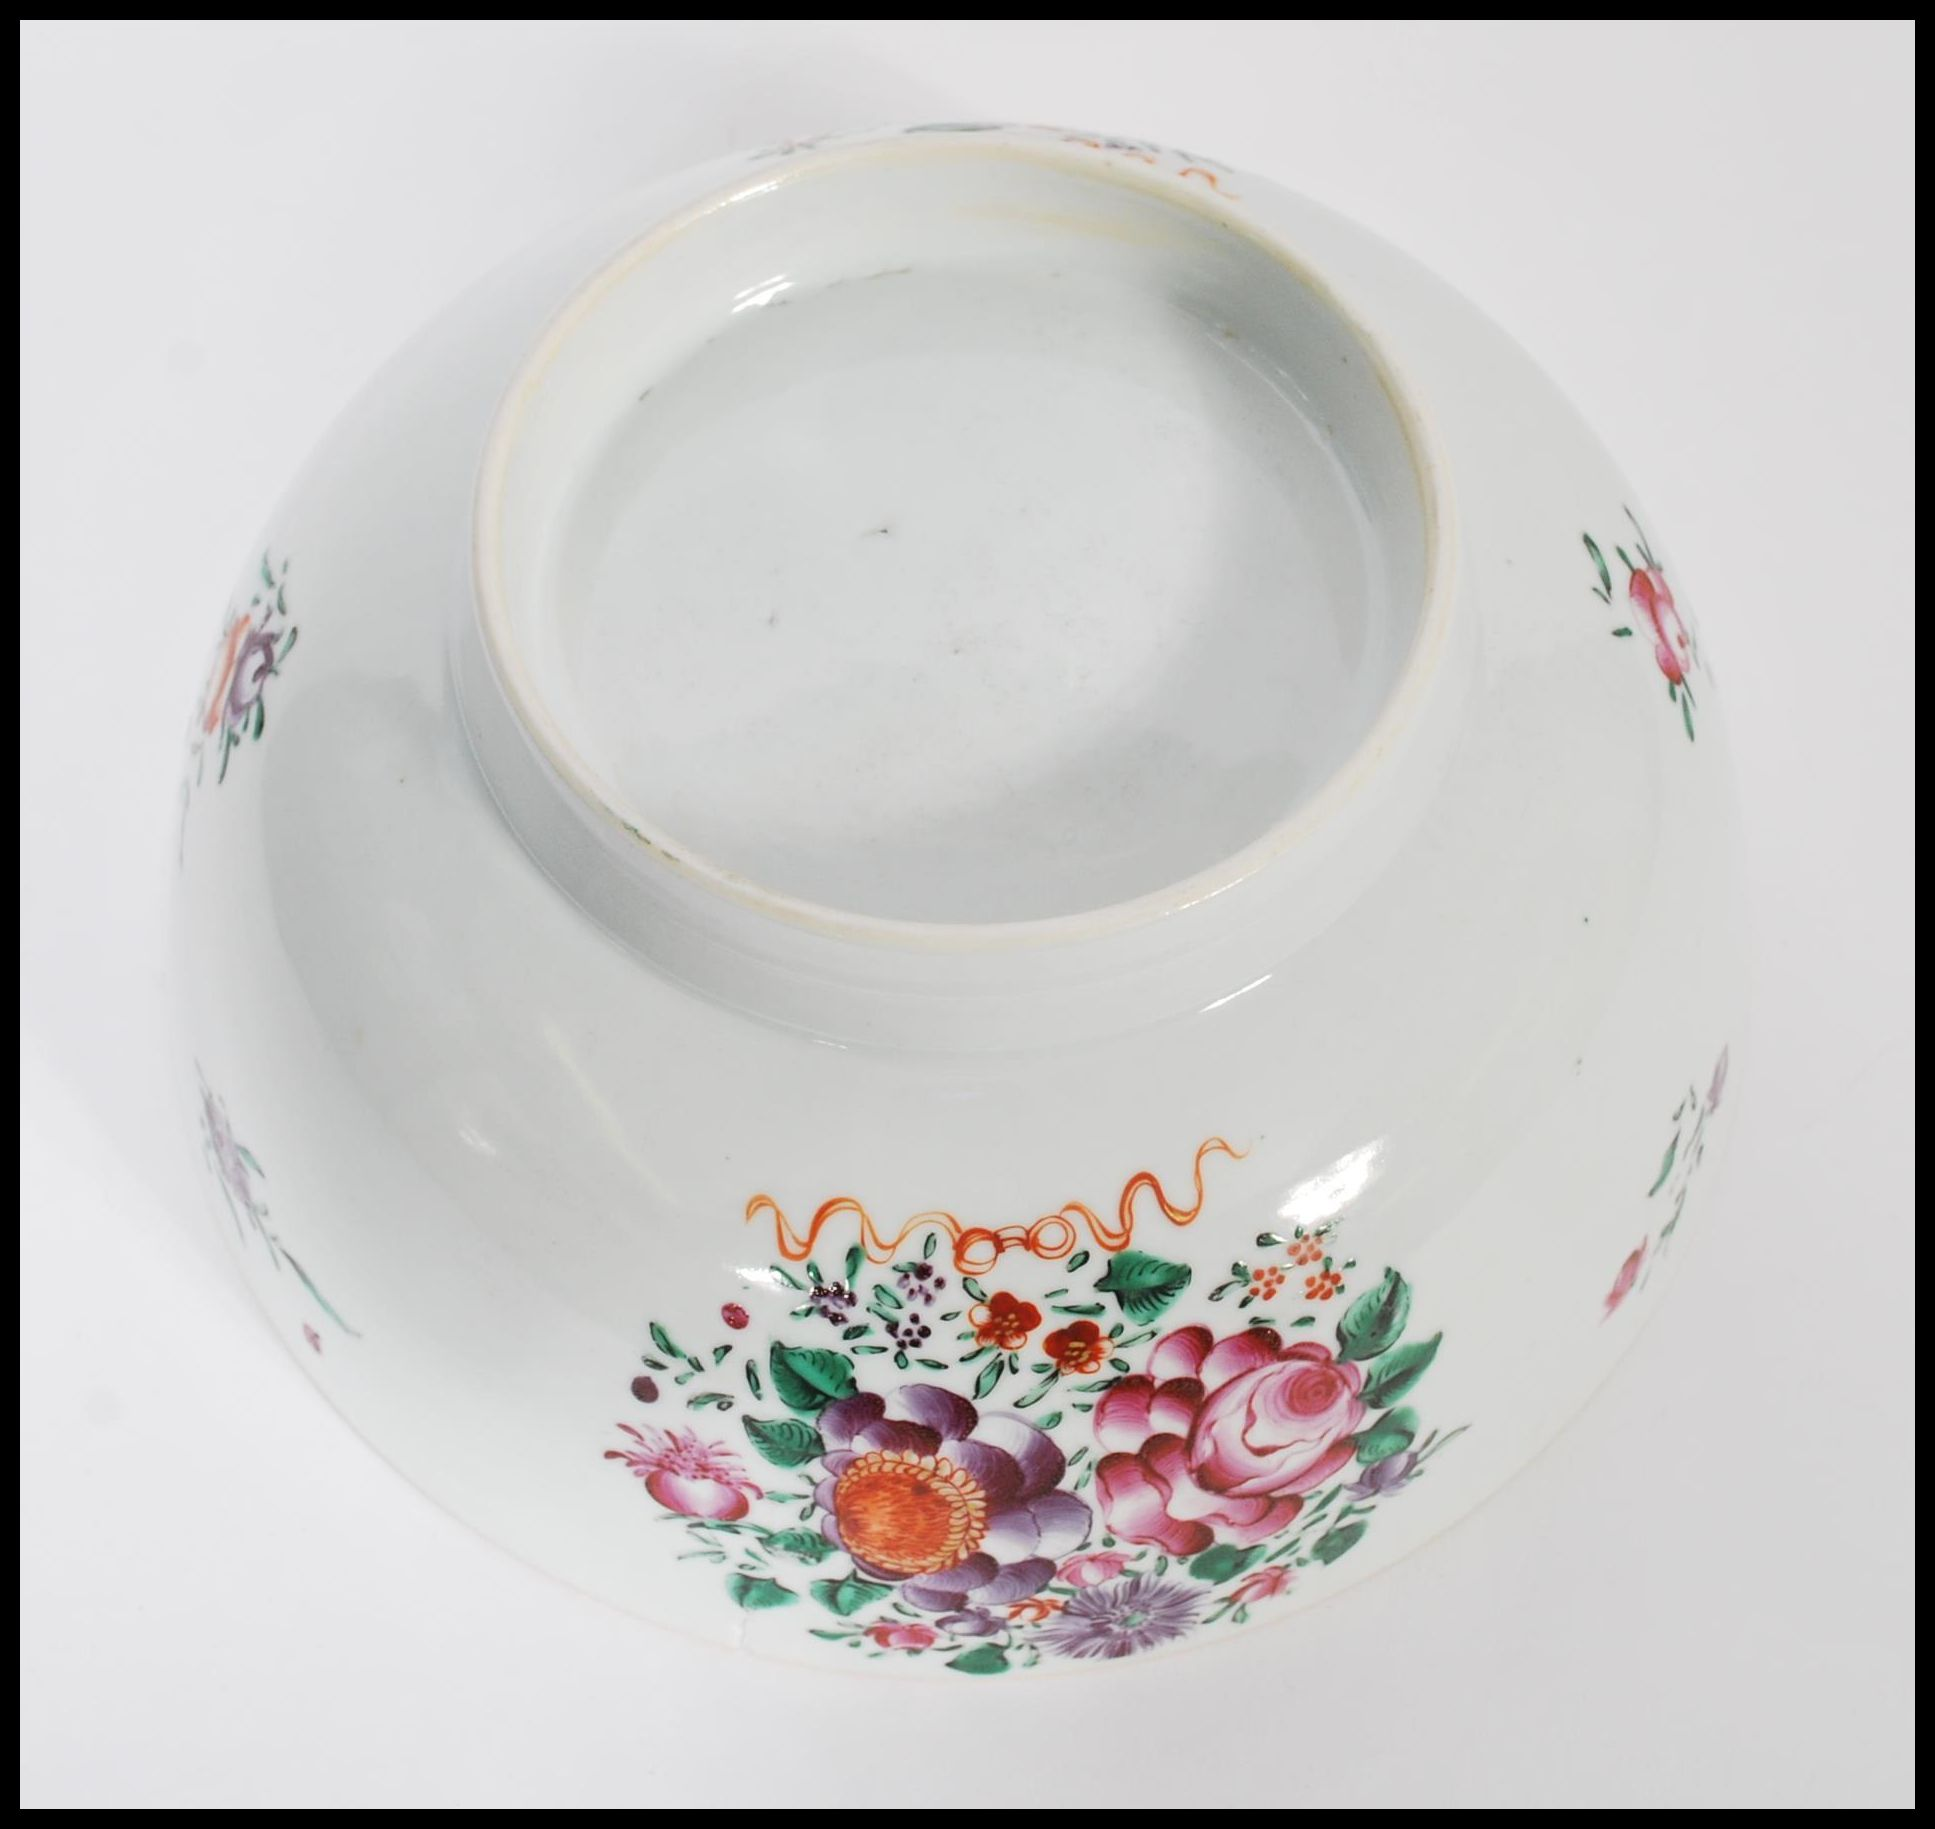 Lot 3 - An 18th century Cantonese large Chinese ceramic bowl having hand painted floral sprays and famille